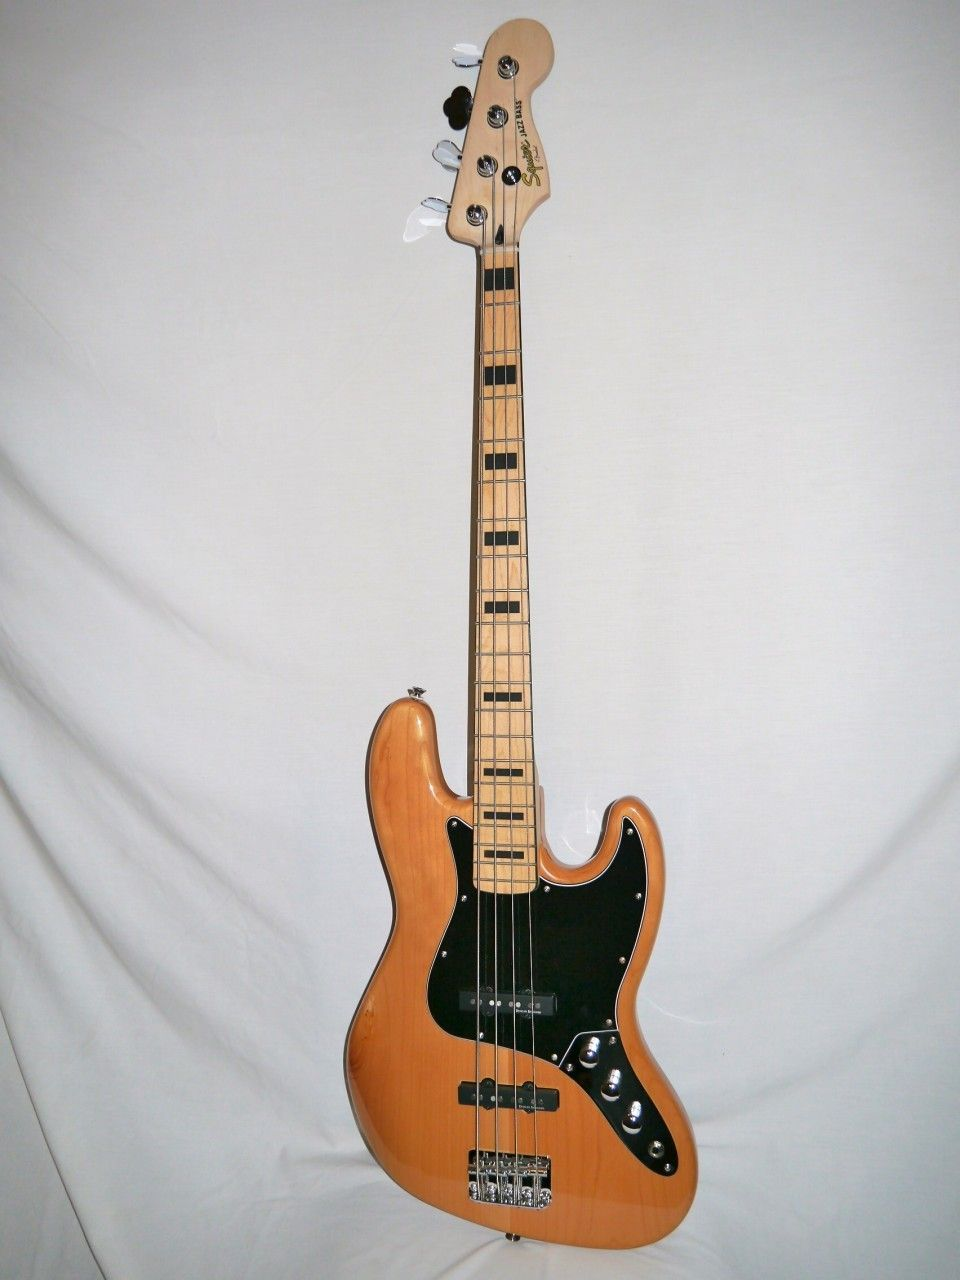 My eb bass squier vintage modified jazz bass - Indian Creek Guitars Squier Vintage Modified 70 S Jazz Bass Natural 219 00 Http